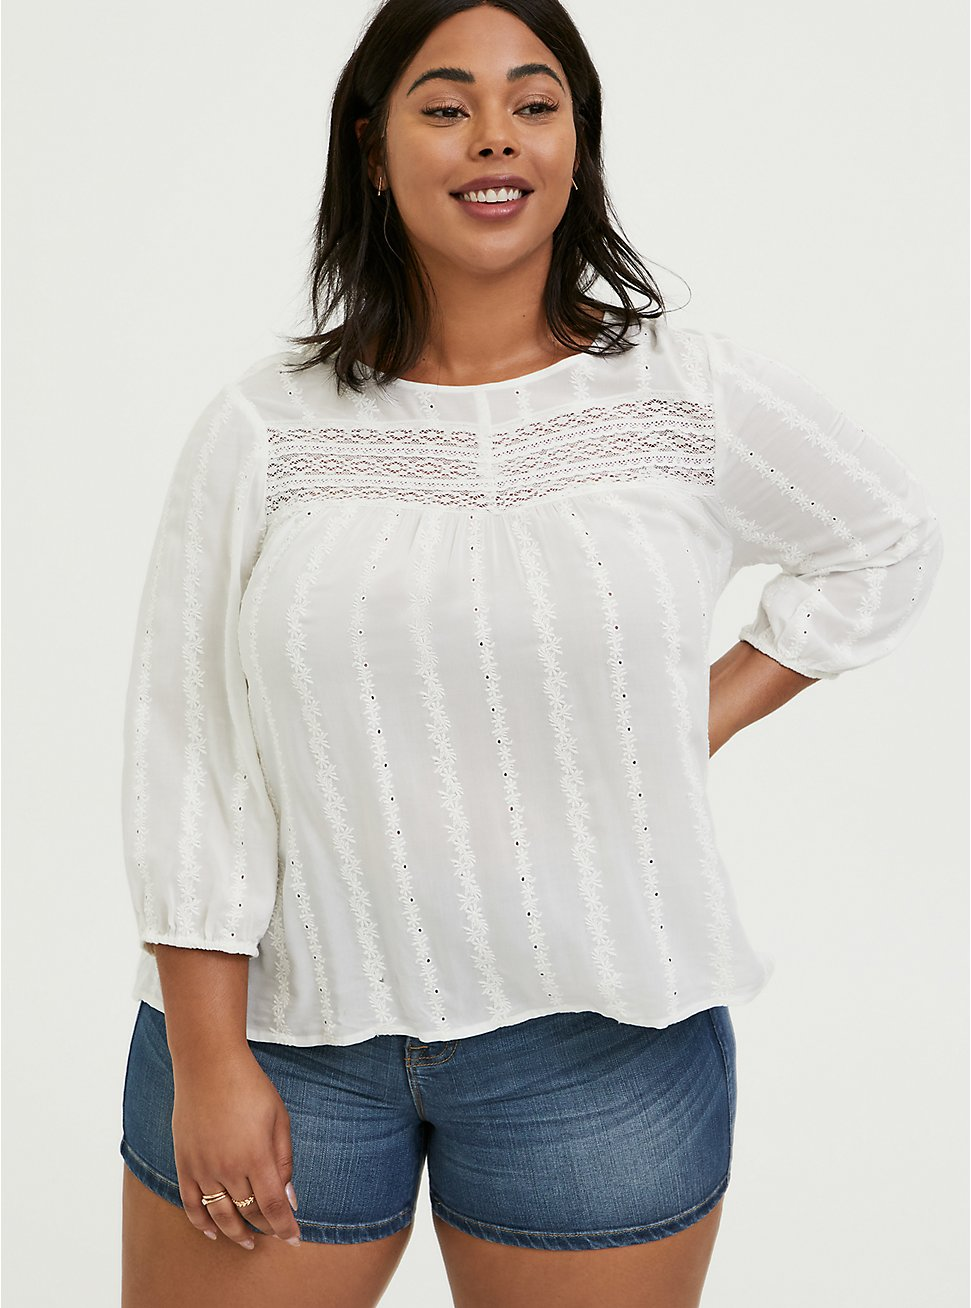 White Eyelet & Lace Embroidered Hi-Lo Blouse, , hi-res